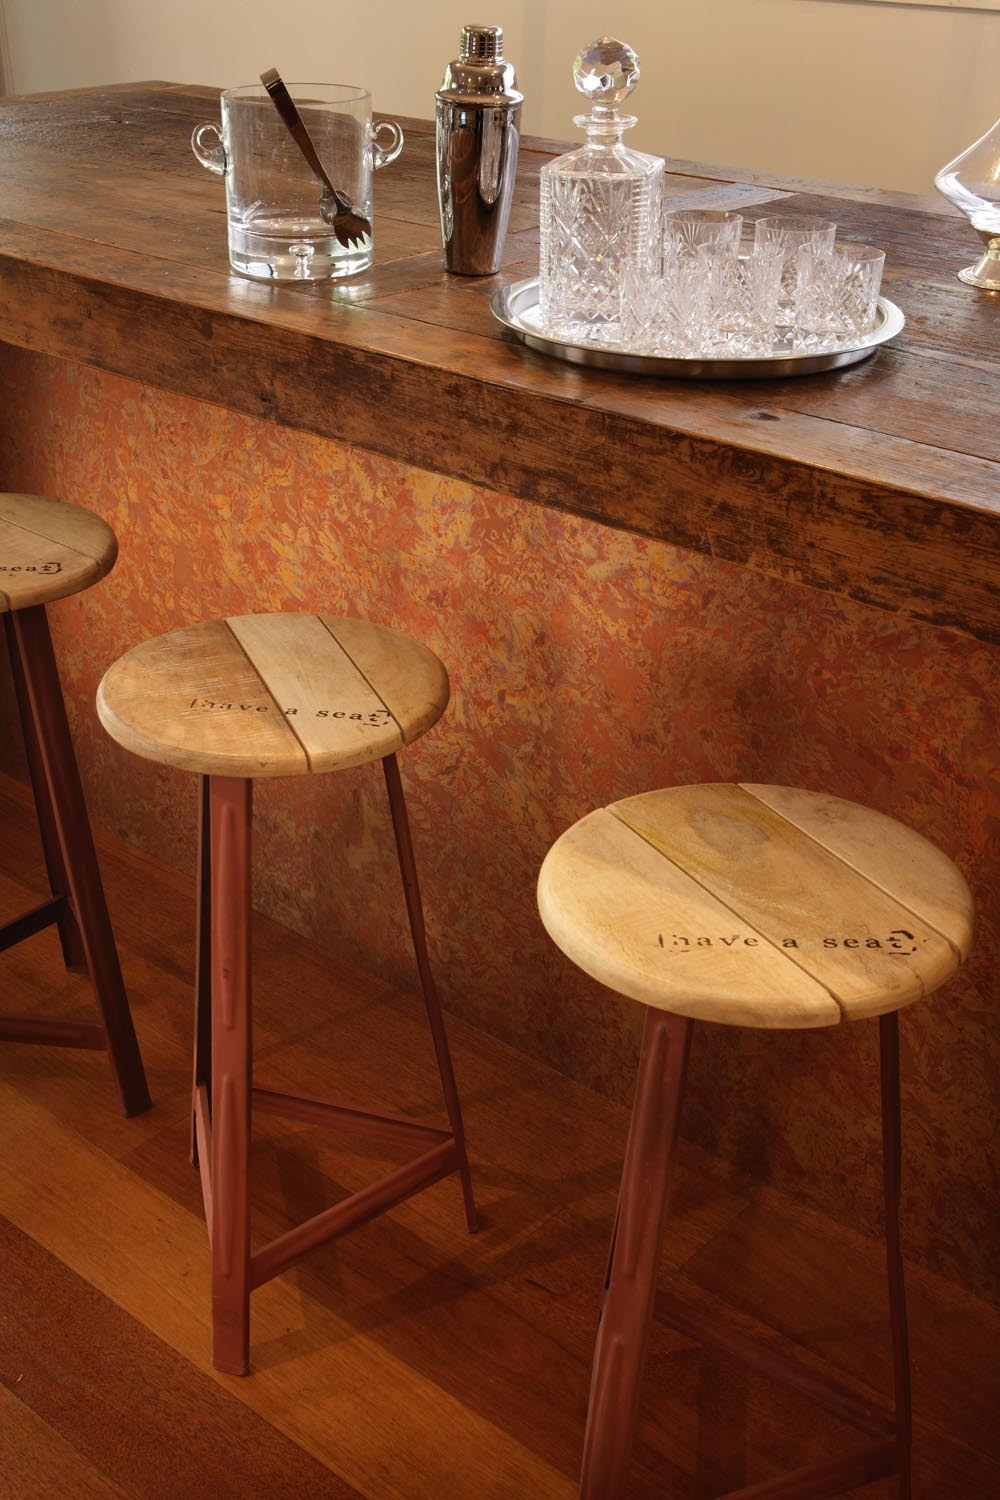 Timber on timber on timber. We just can't get enough of these stools